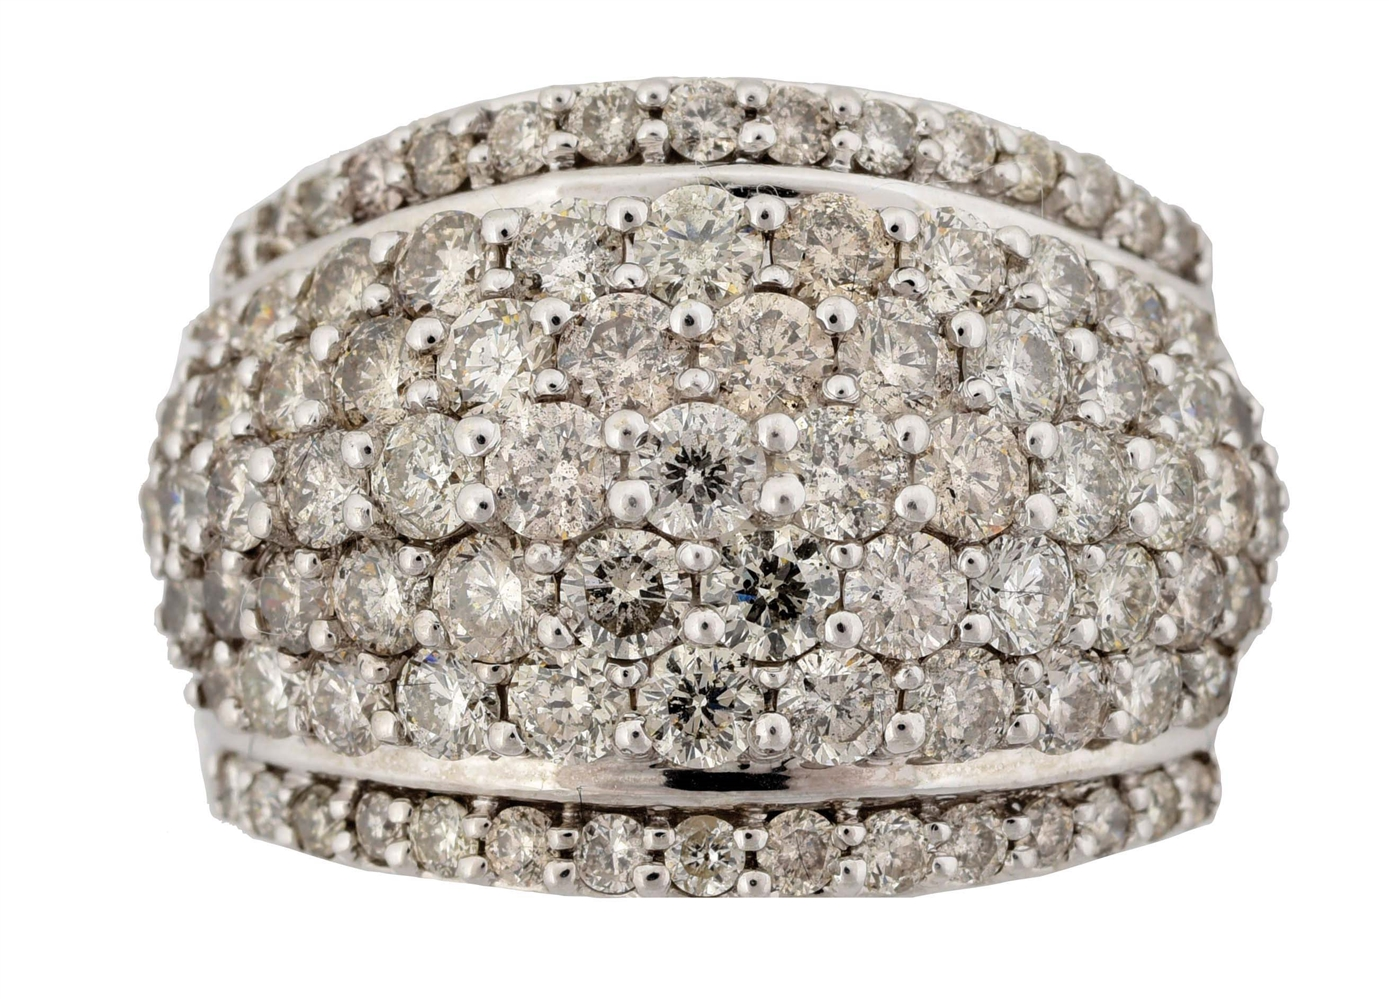 LADYS 14K WHITE GOLD DOME-STYLE DIAMOND RING WITH APPRAISAL.